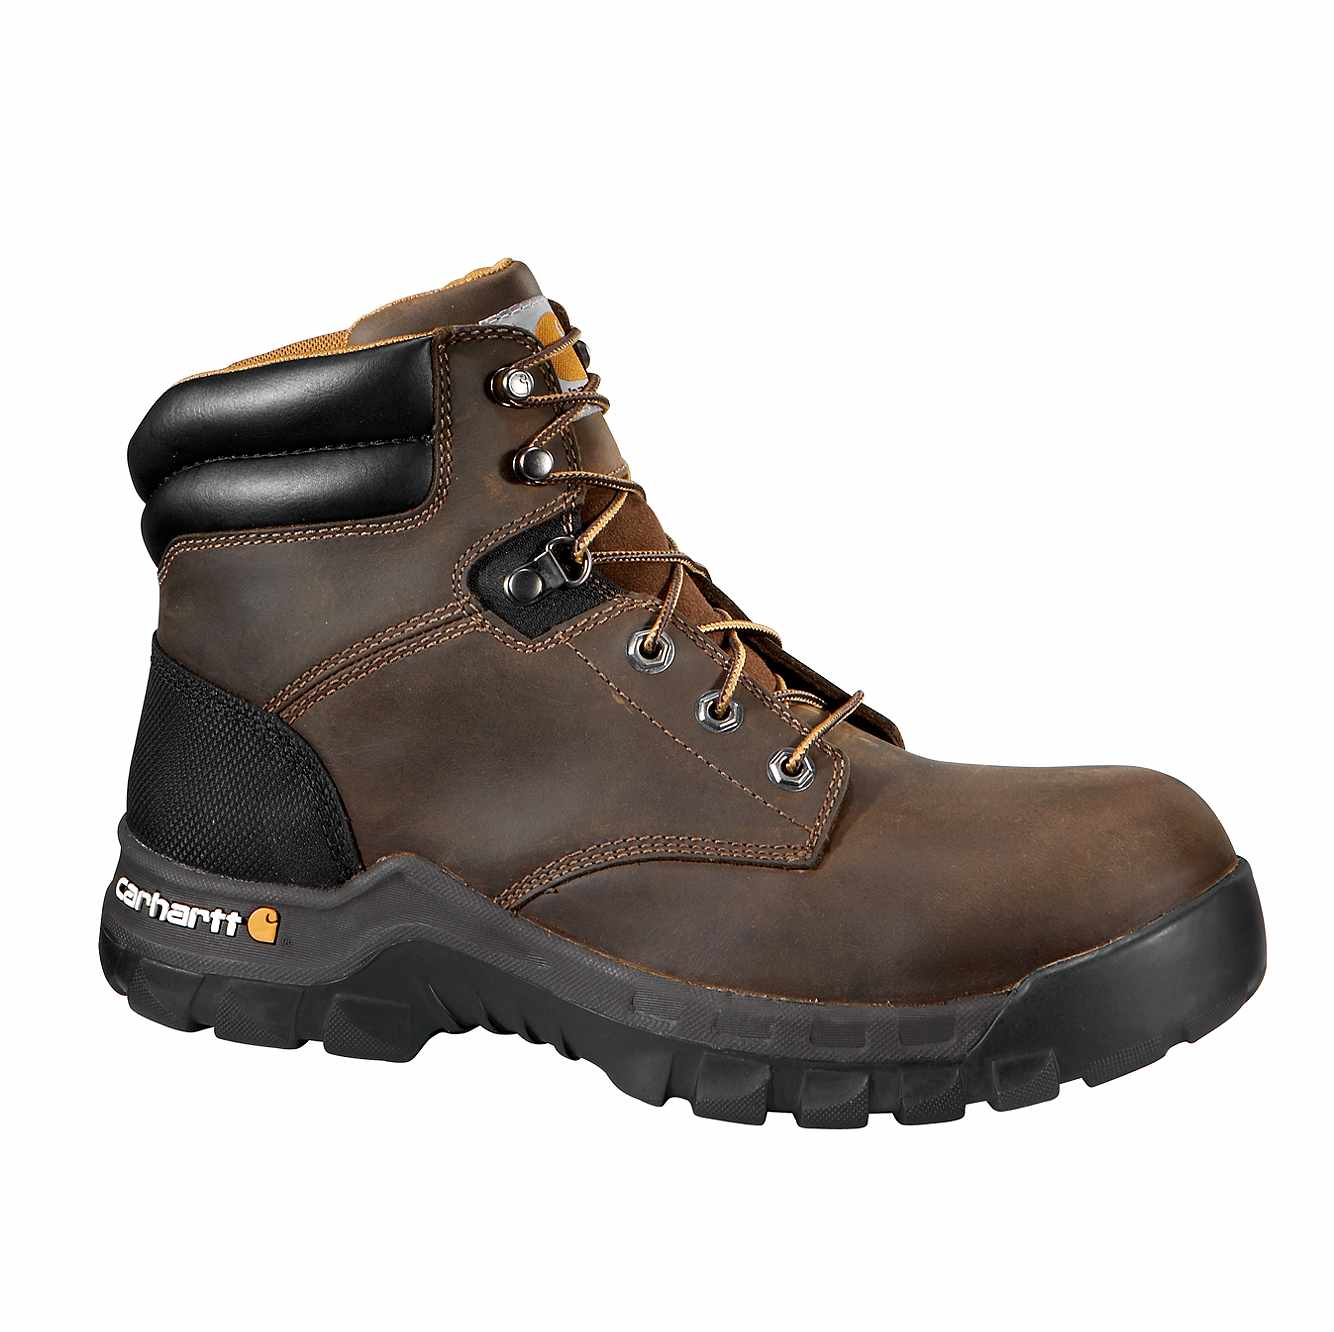 Picture of Rugged Flex® 6-Inch Non-Safety Toe Work Boot in Brown Oil Tanned